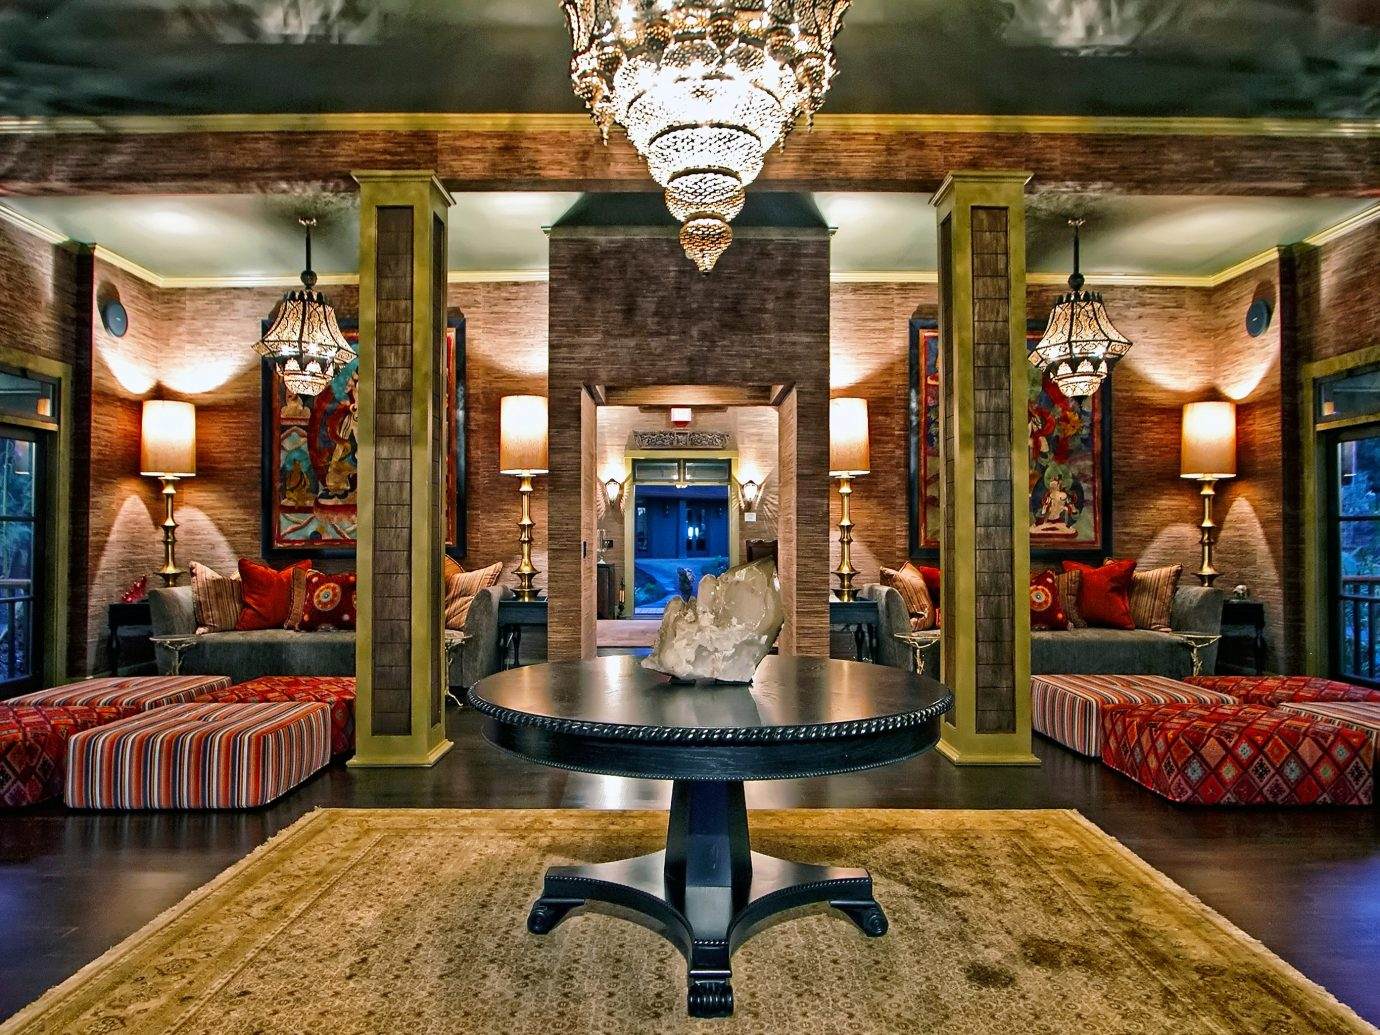 Beach Boutique Hotels Eco Hotels Lounge Luxury Travel Modern Romance indoor Lobby room Living estate interior design lighting mansion home furniture Bar screenshot decorated Boutique retail area colorful